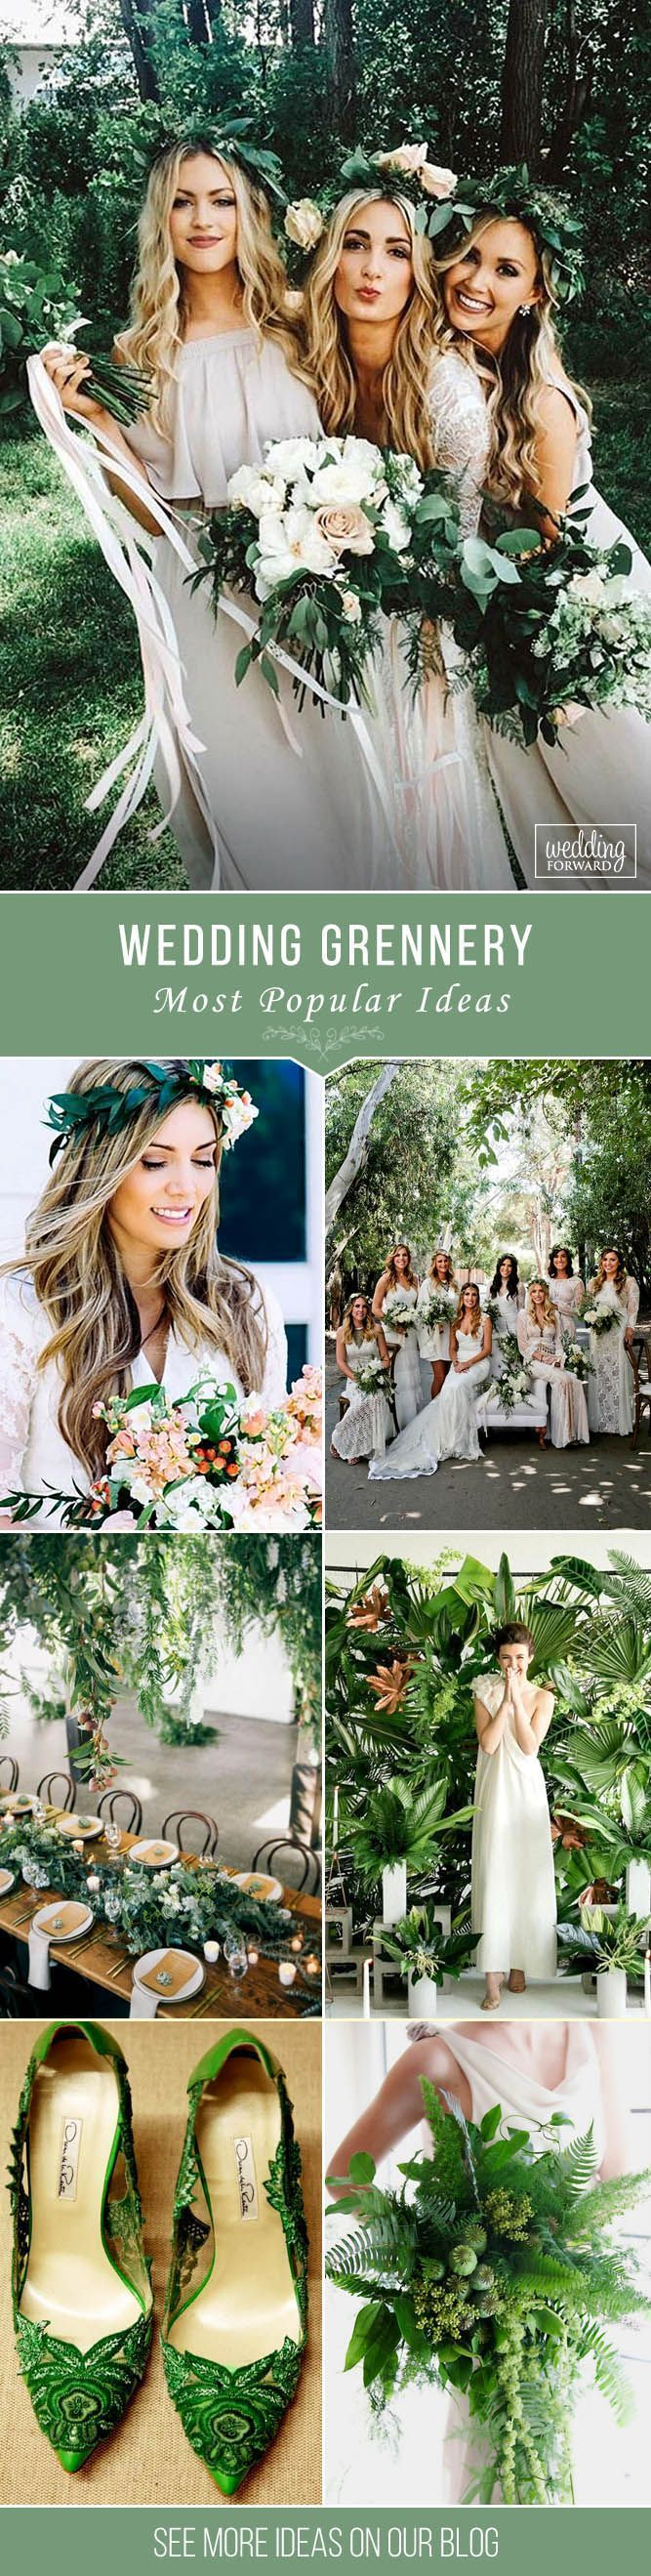 Wedding Greenery - Most Popular Ideas For 2017 ❤️ Wedding greenery is a trend for 2017. Get the inspiration looking at the ideas of Tuscan weddings in our gallery. See more: http://www.weddingforward.com/wedding-greenery/ #wedding #photography